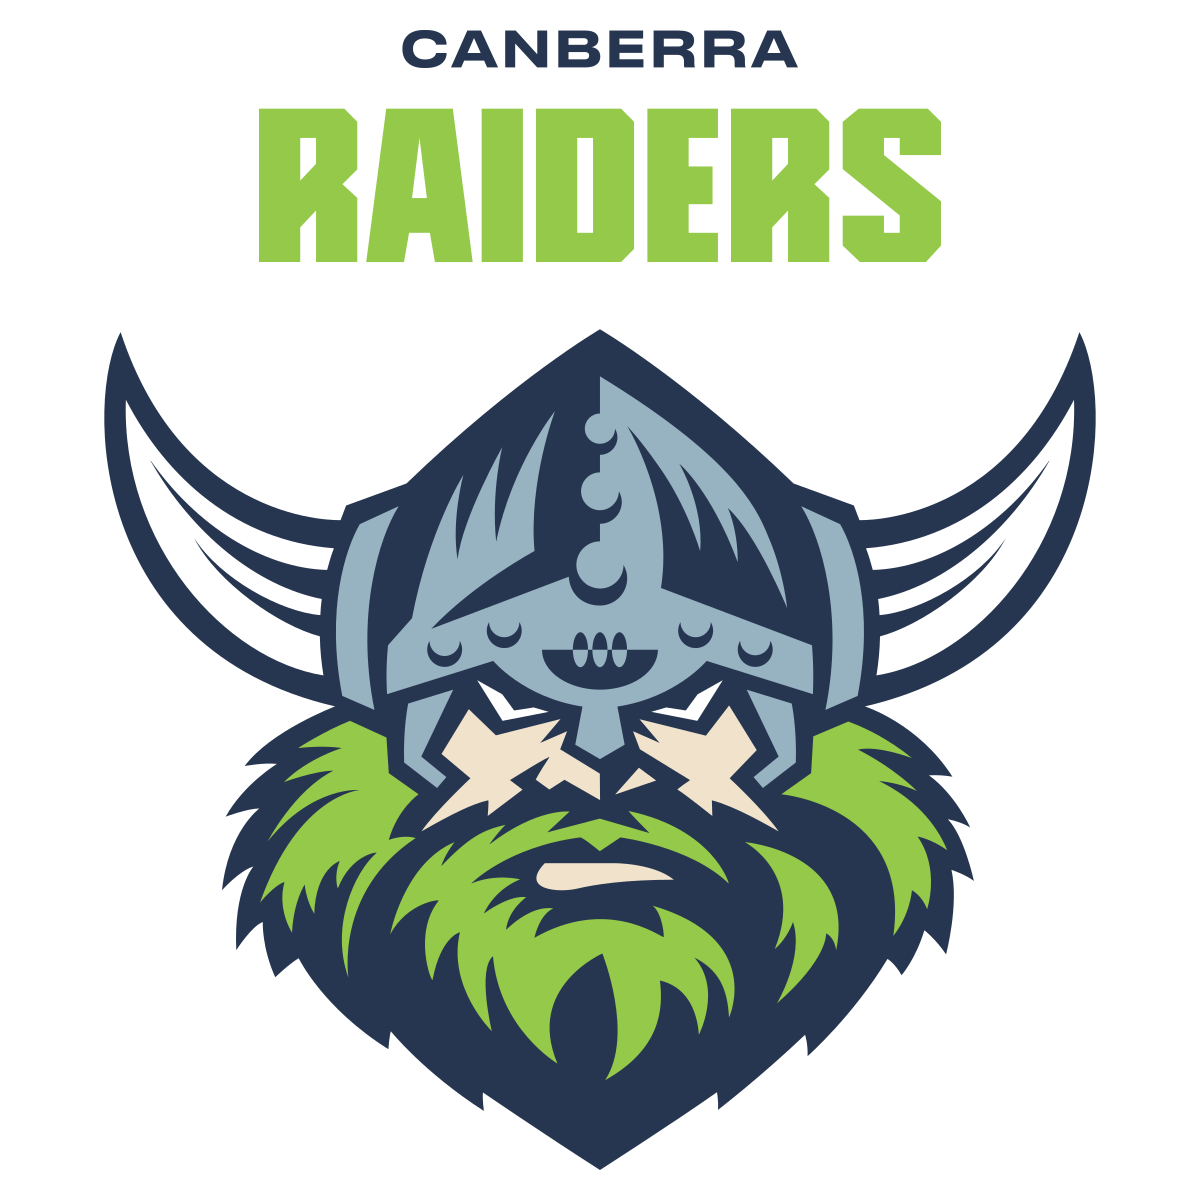 Places Canberra Raiders